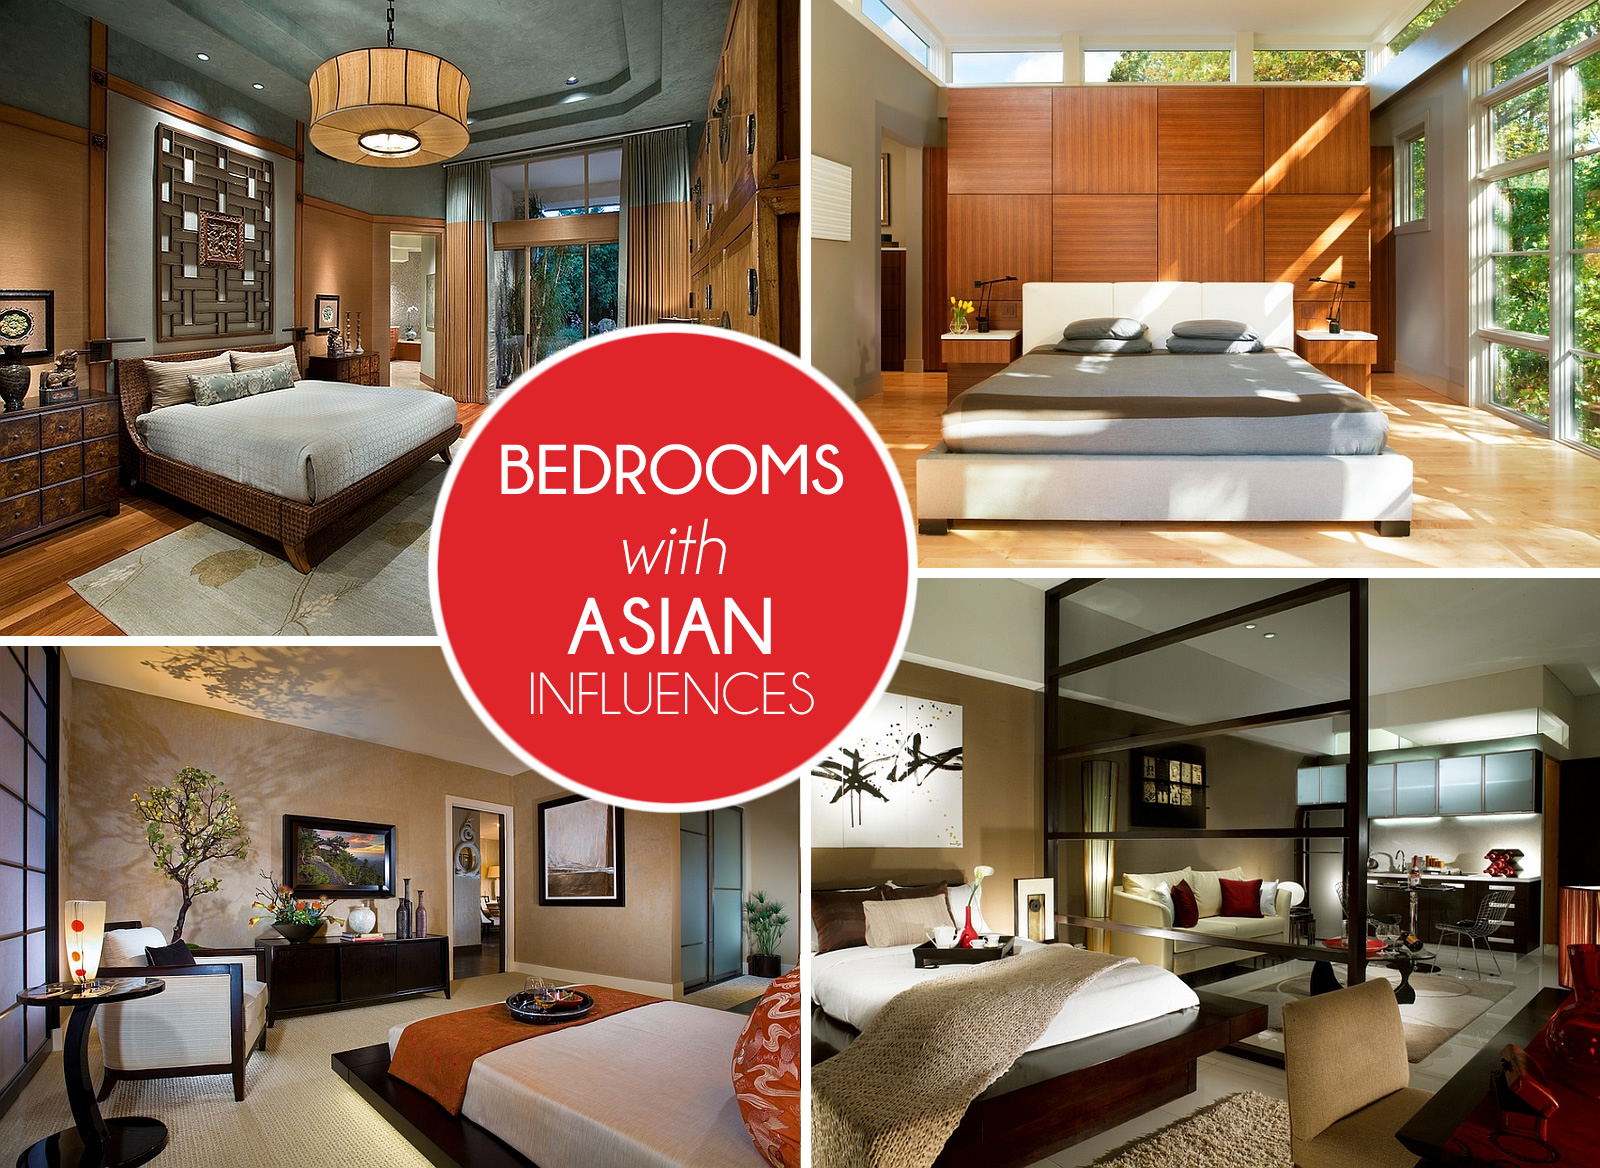 Asian Bedroom Ideas   Large And Beautiful Photos. Photo To Select Asian  Bedroom Ideas | Design Your Home Part 66